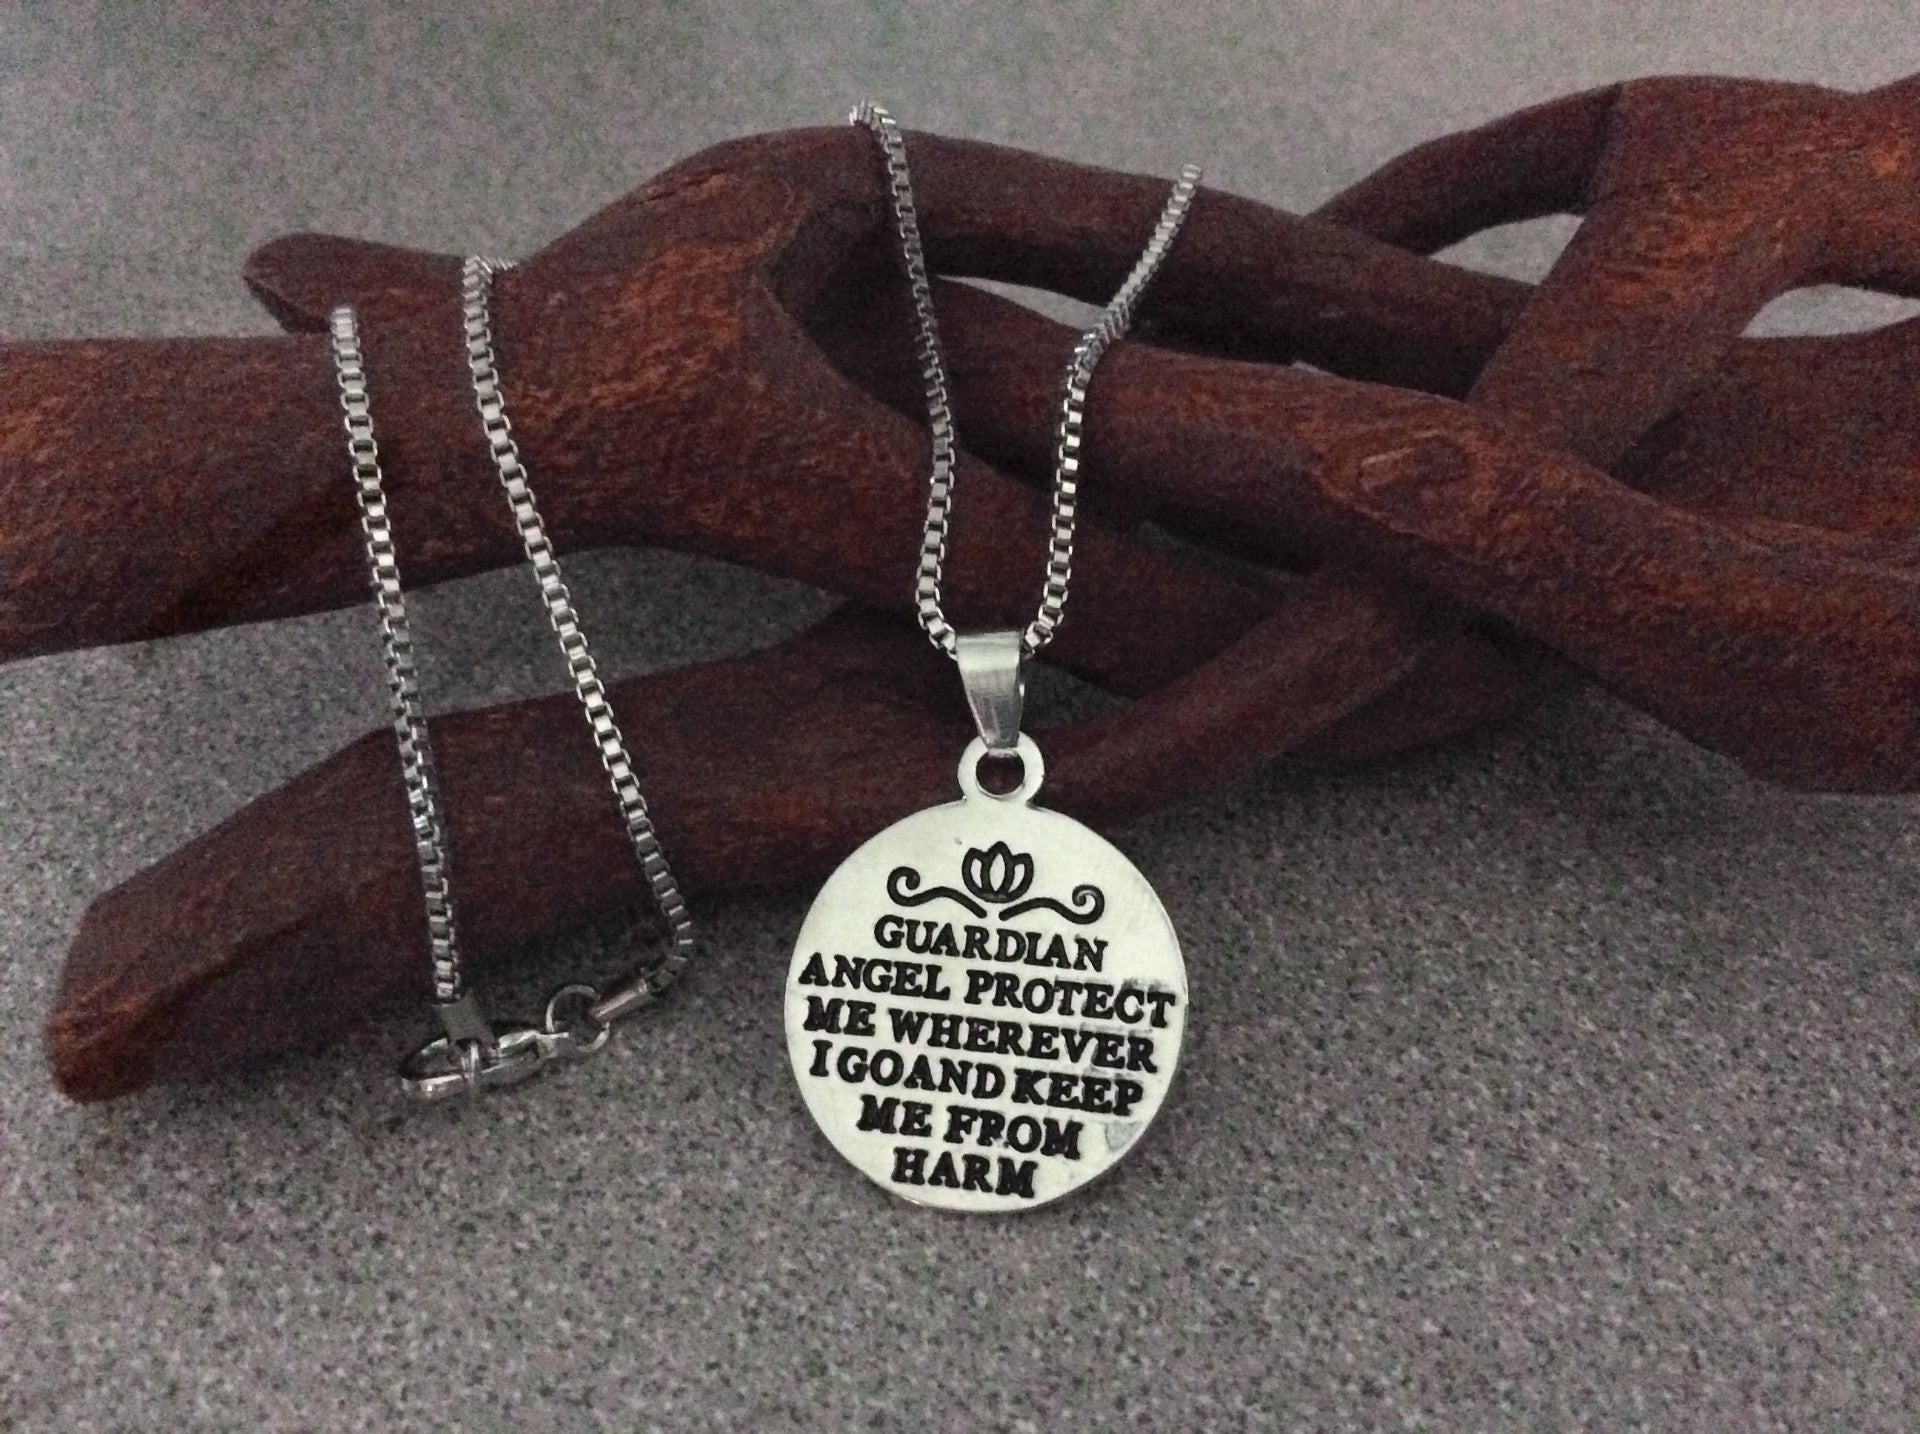 handmade handstamped necklace stamped jewelry karma necklaces photo